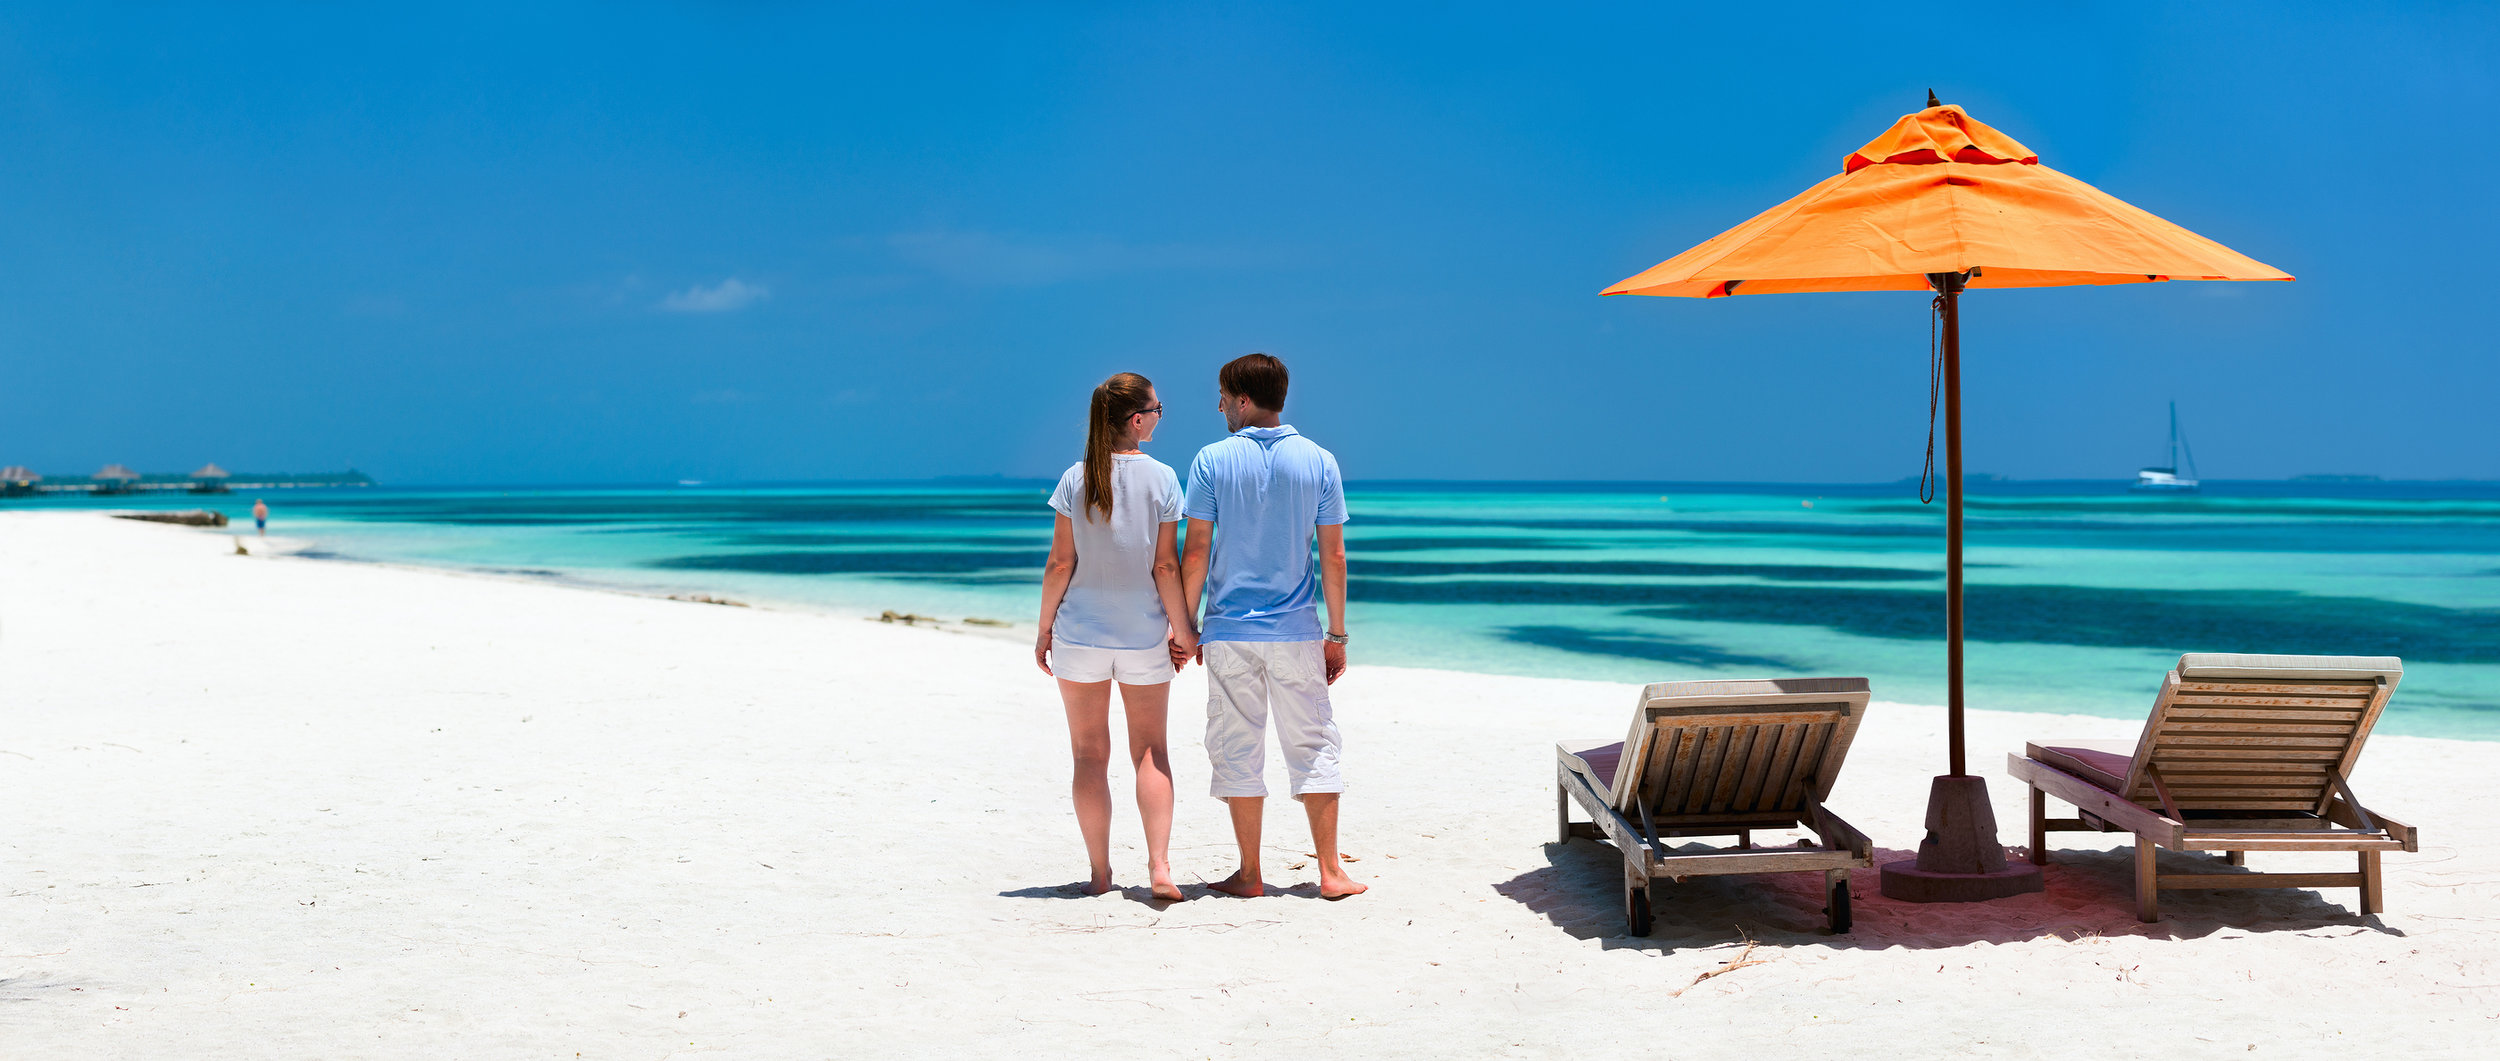 Bigstock_ 87251327 - Back view of a couple on a tropical beach vacation panorama perfect for banners.jpg